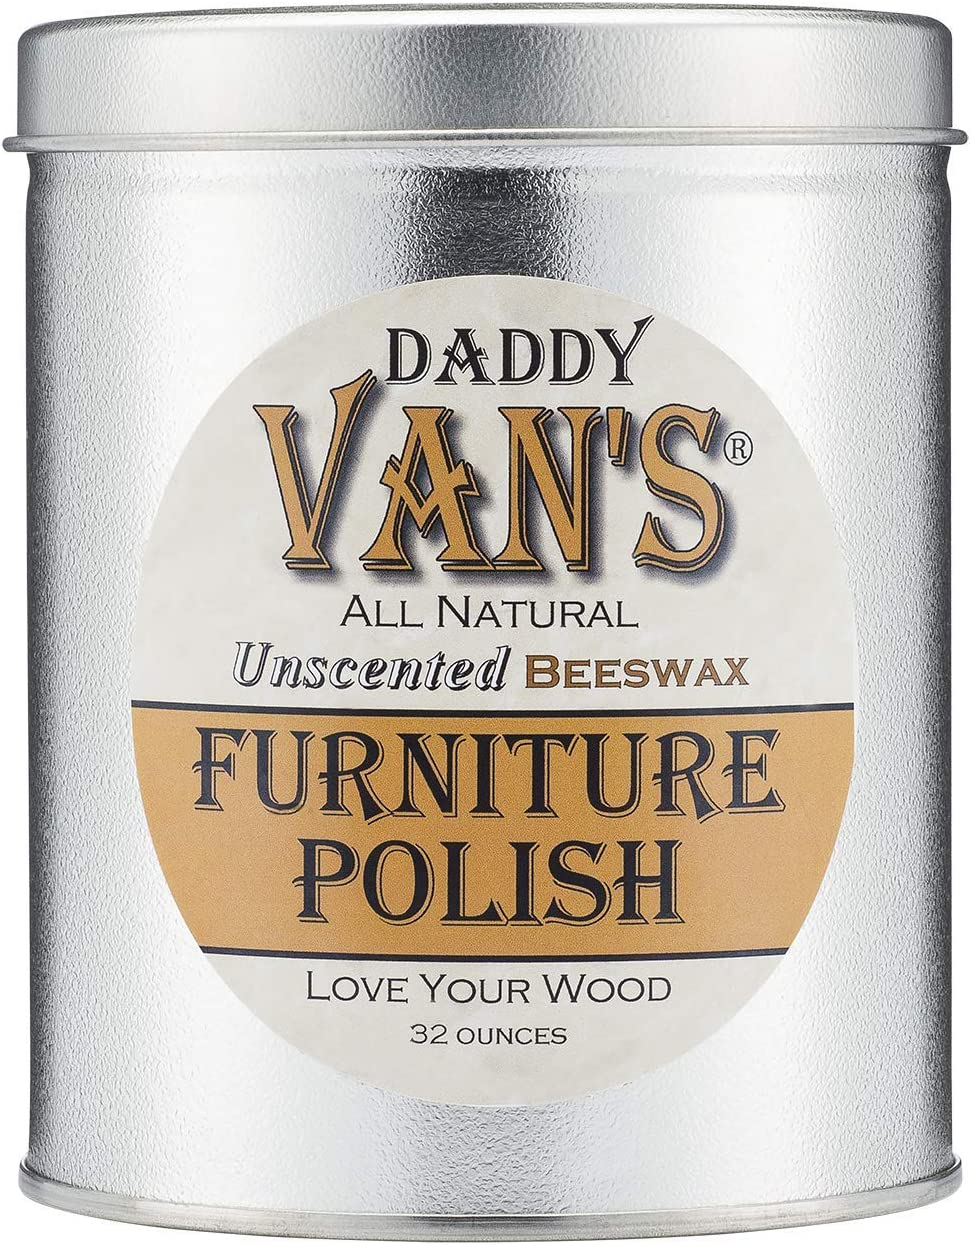 Daddy Van's All Natural Unscented Beeswax Furniture Polish - 32 Ounce Economy Size